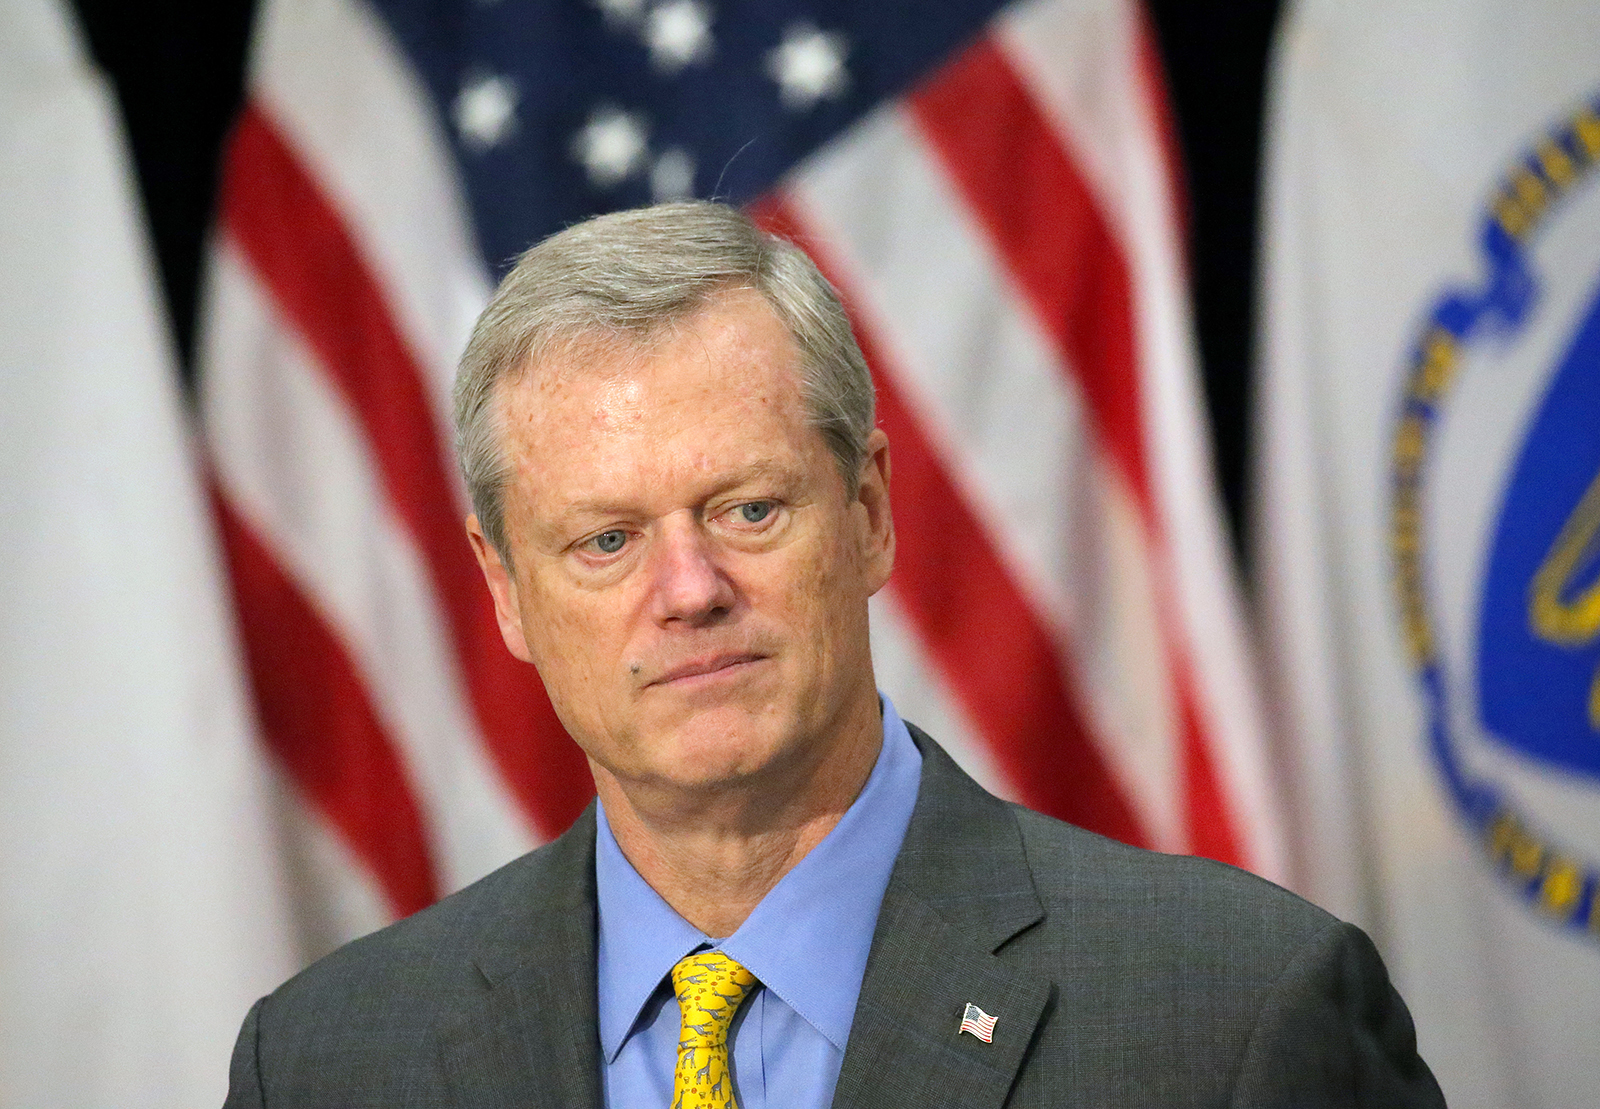 Governor Charlie Baker speaks during a state update on the coronavirus pandemic in Boston on July 24.